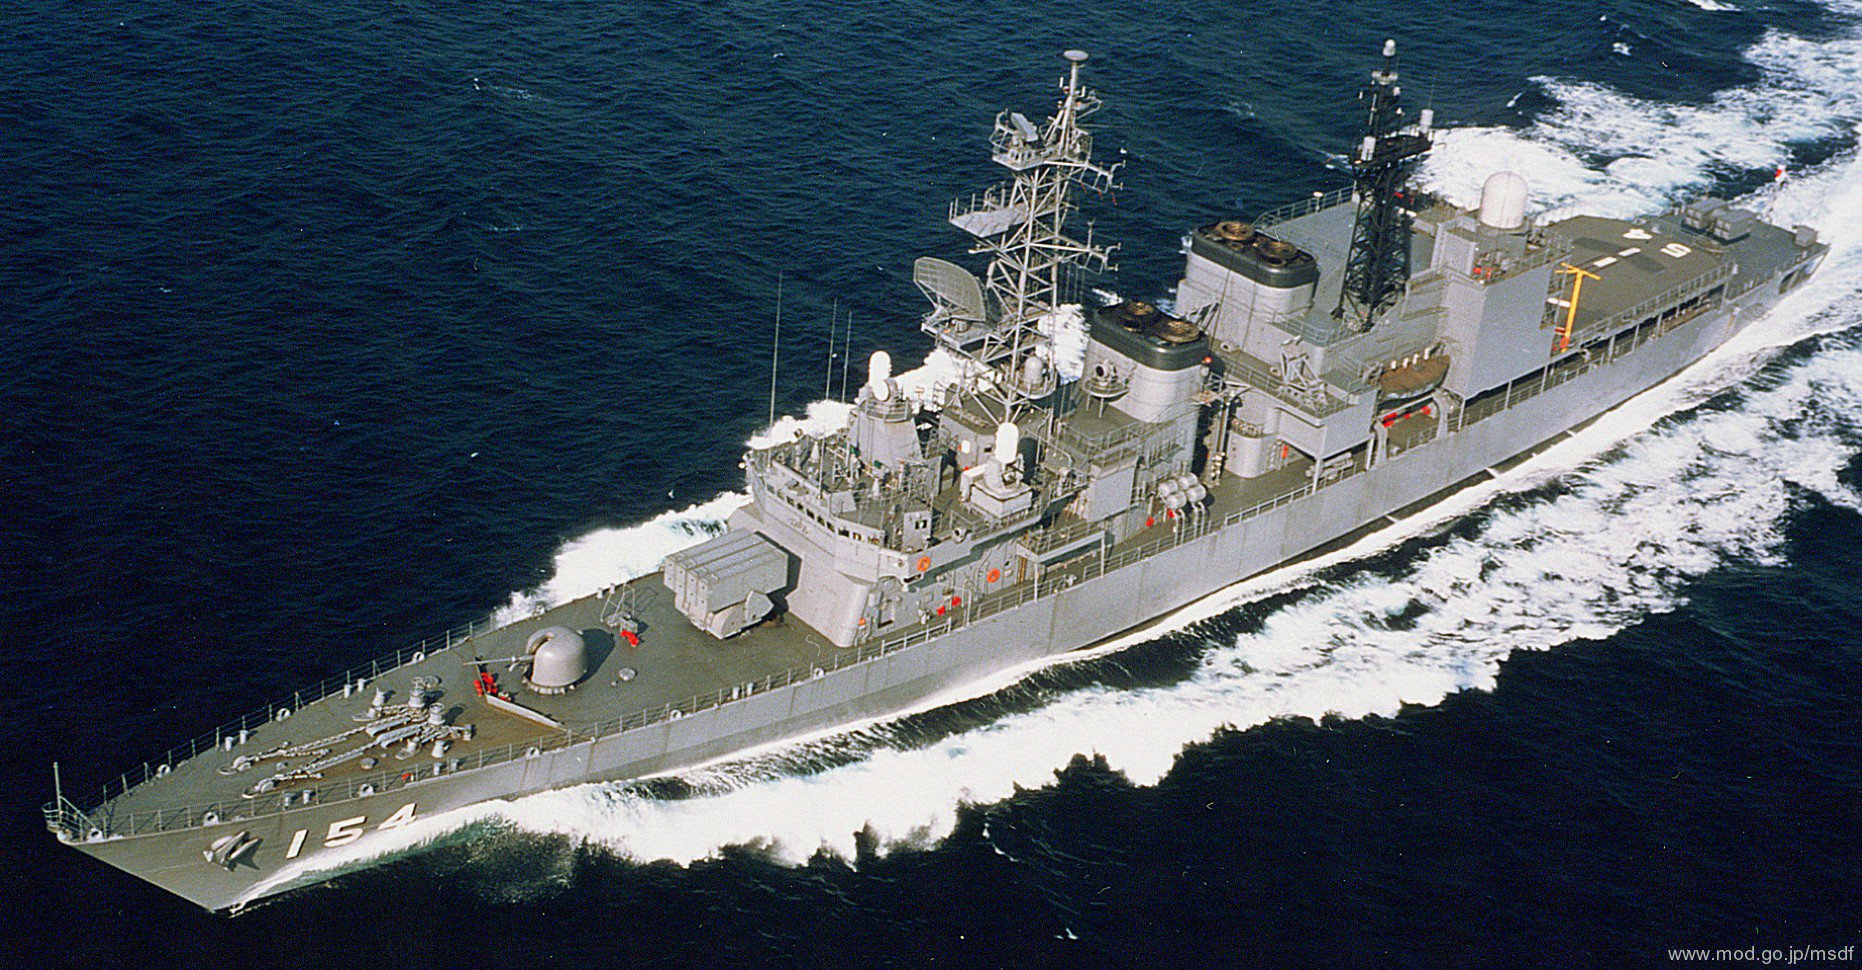 Japanese destroyer to dock in Manila for 3-day visit